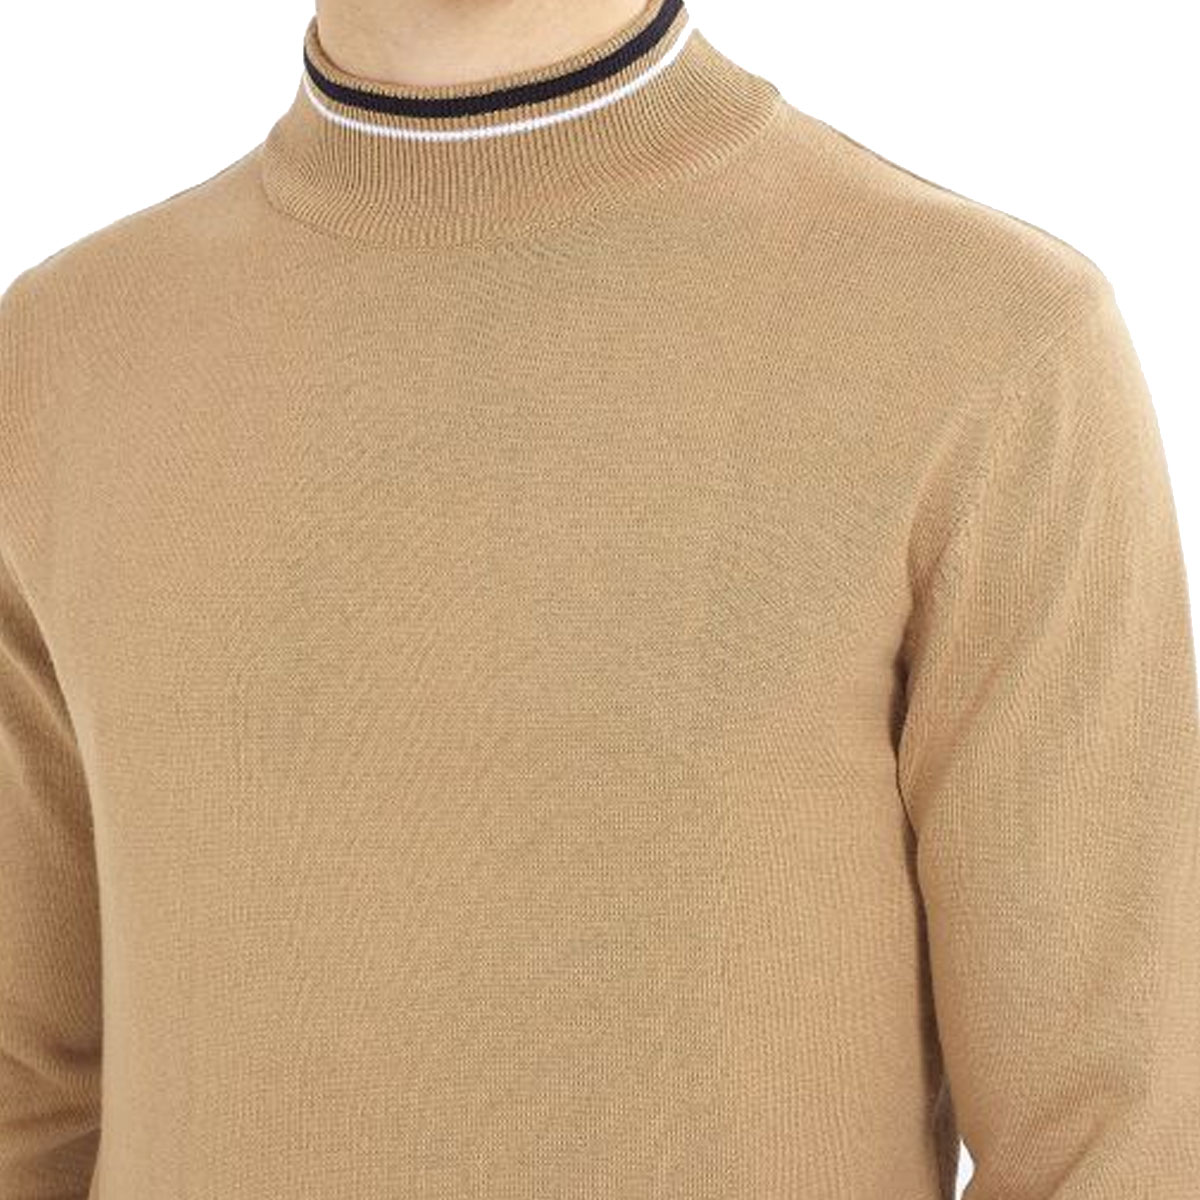 Brave-Soul-Mens-Turtle-Neck-Jumper-Contrast-Tipped-Hallis thumbnail 26